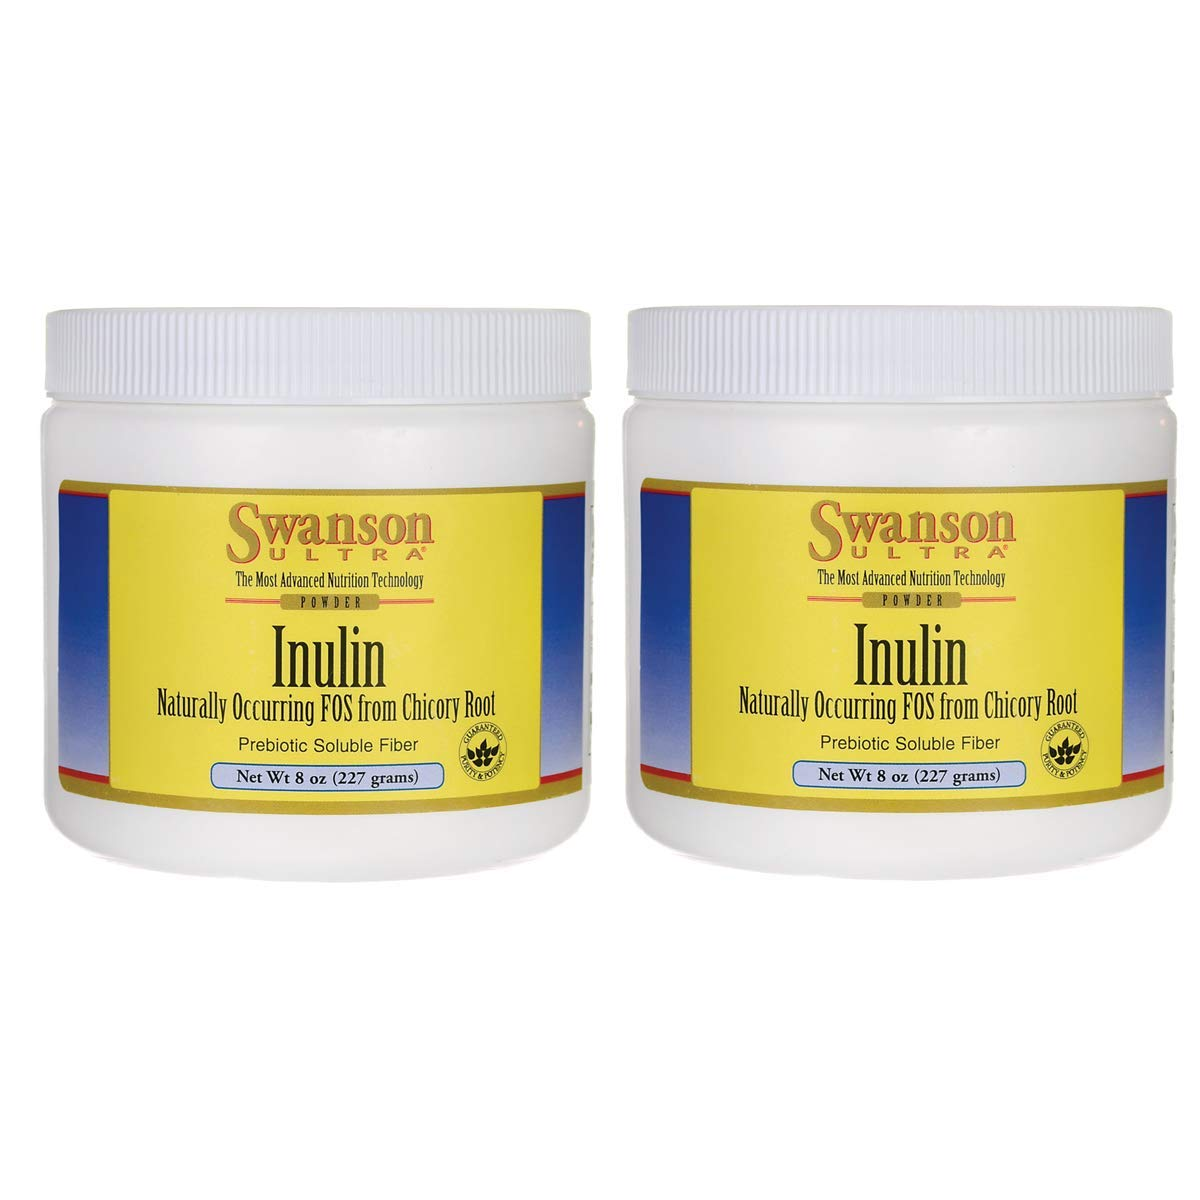 Swanson Inulin Powder 8 Ounce (227 g) Pwdr 2 Pack by Swanson